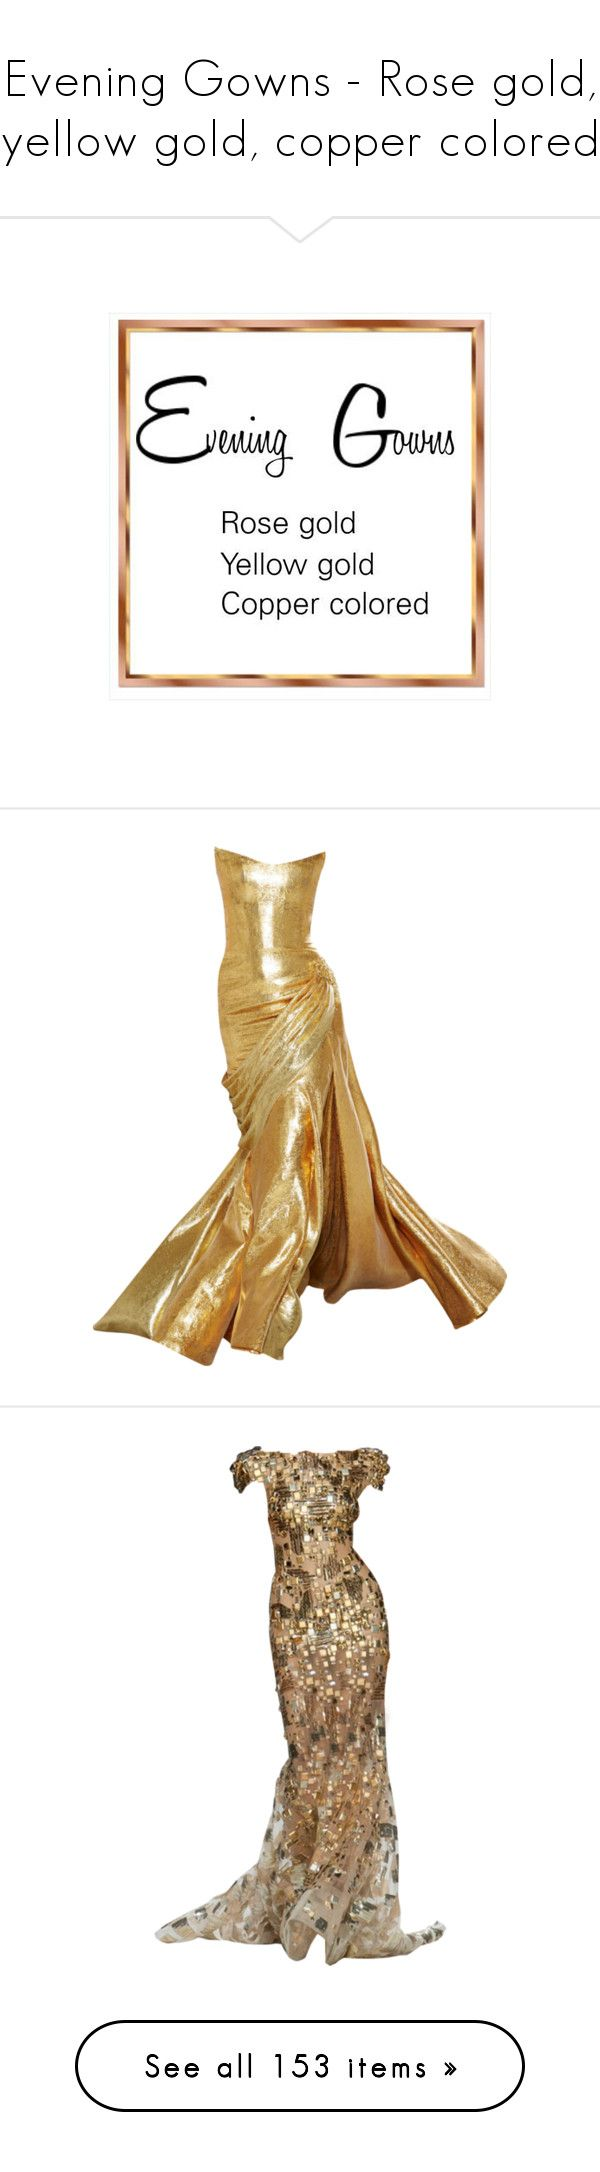 """""""Evening Gowns - Rose gold, yellow gold, copper colored"""" by leaff88 ❤ liked on Polyvore featuring dresses, gowns, long dresses, vestido, tube dress, long tube dress, tube gown, vestidos, long dress and formal gowns"""